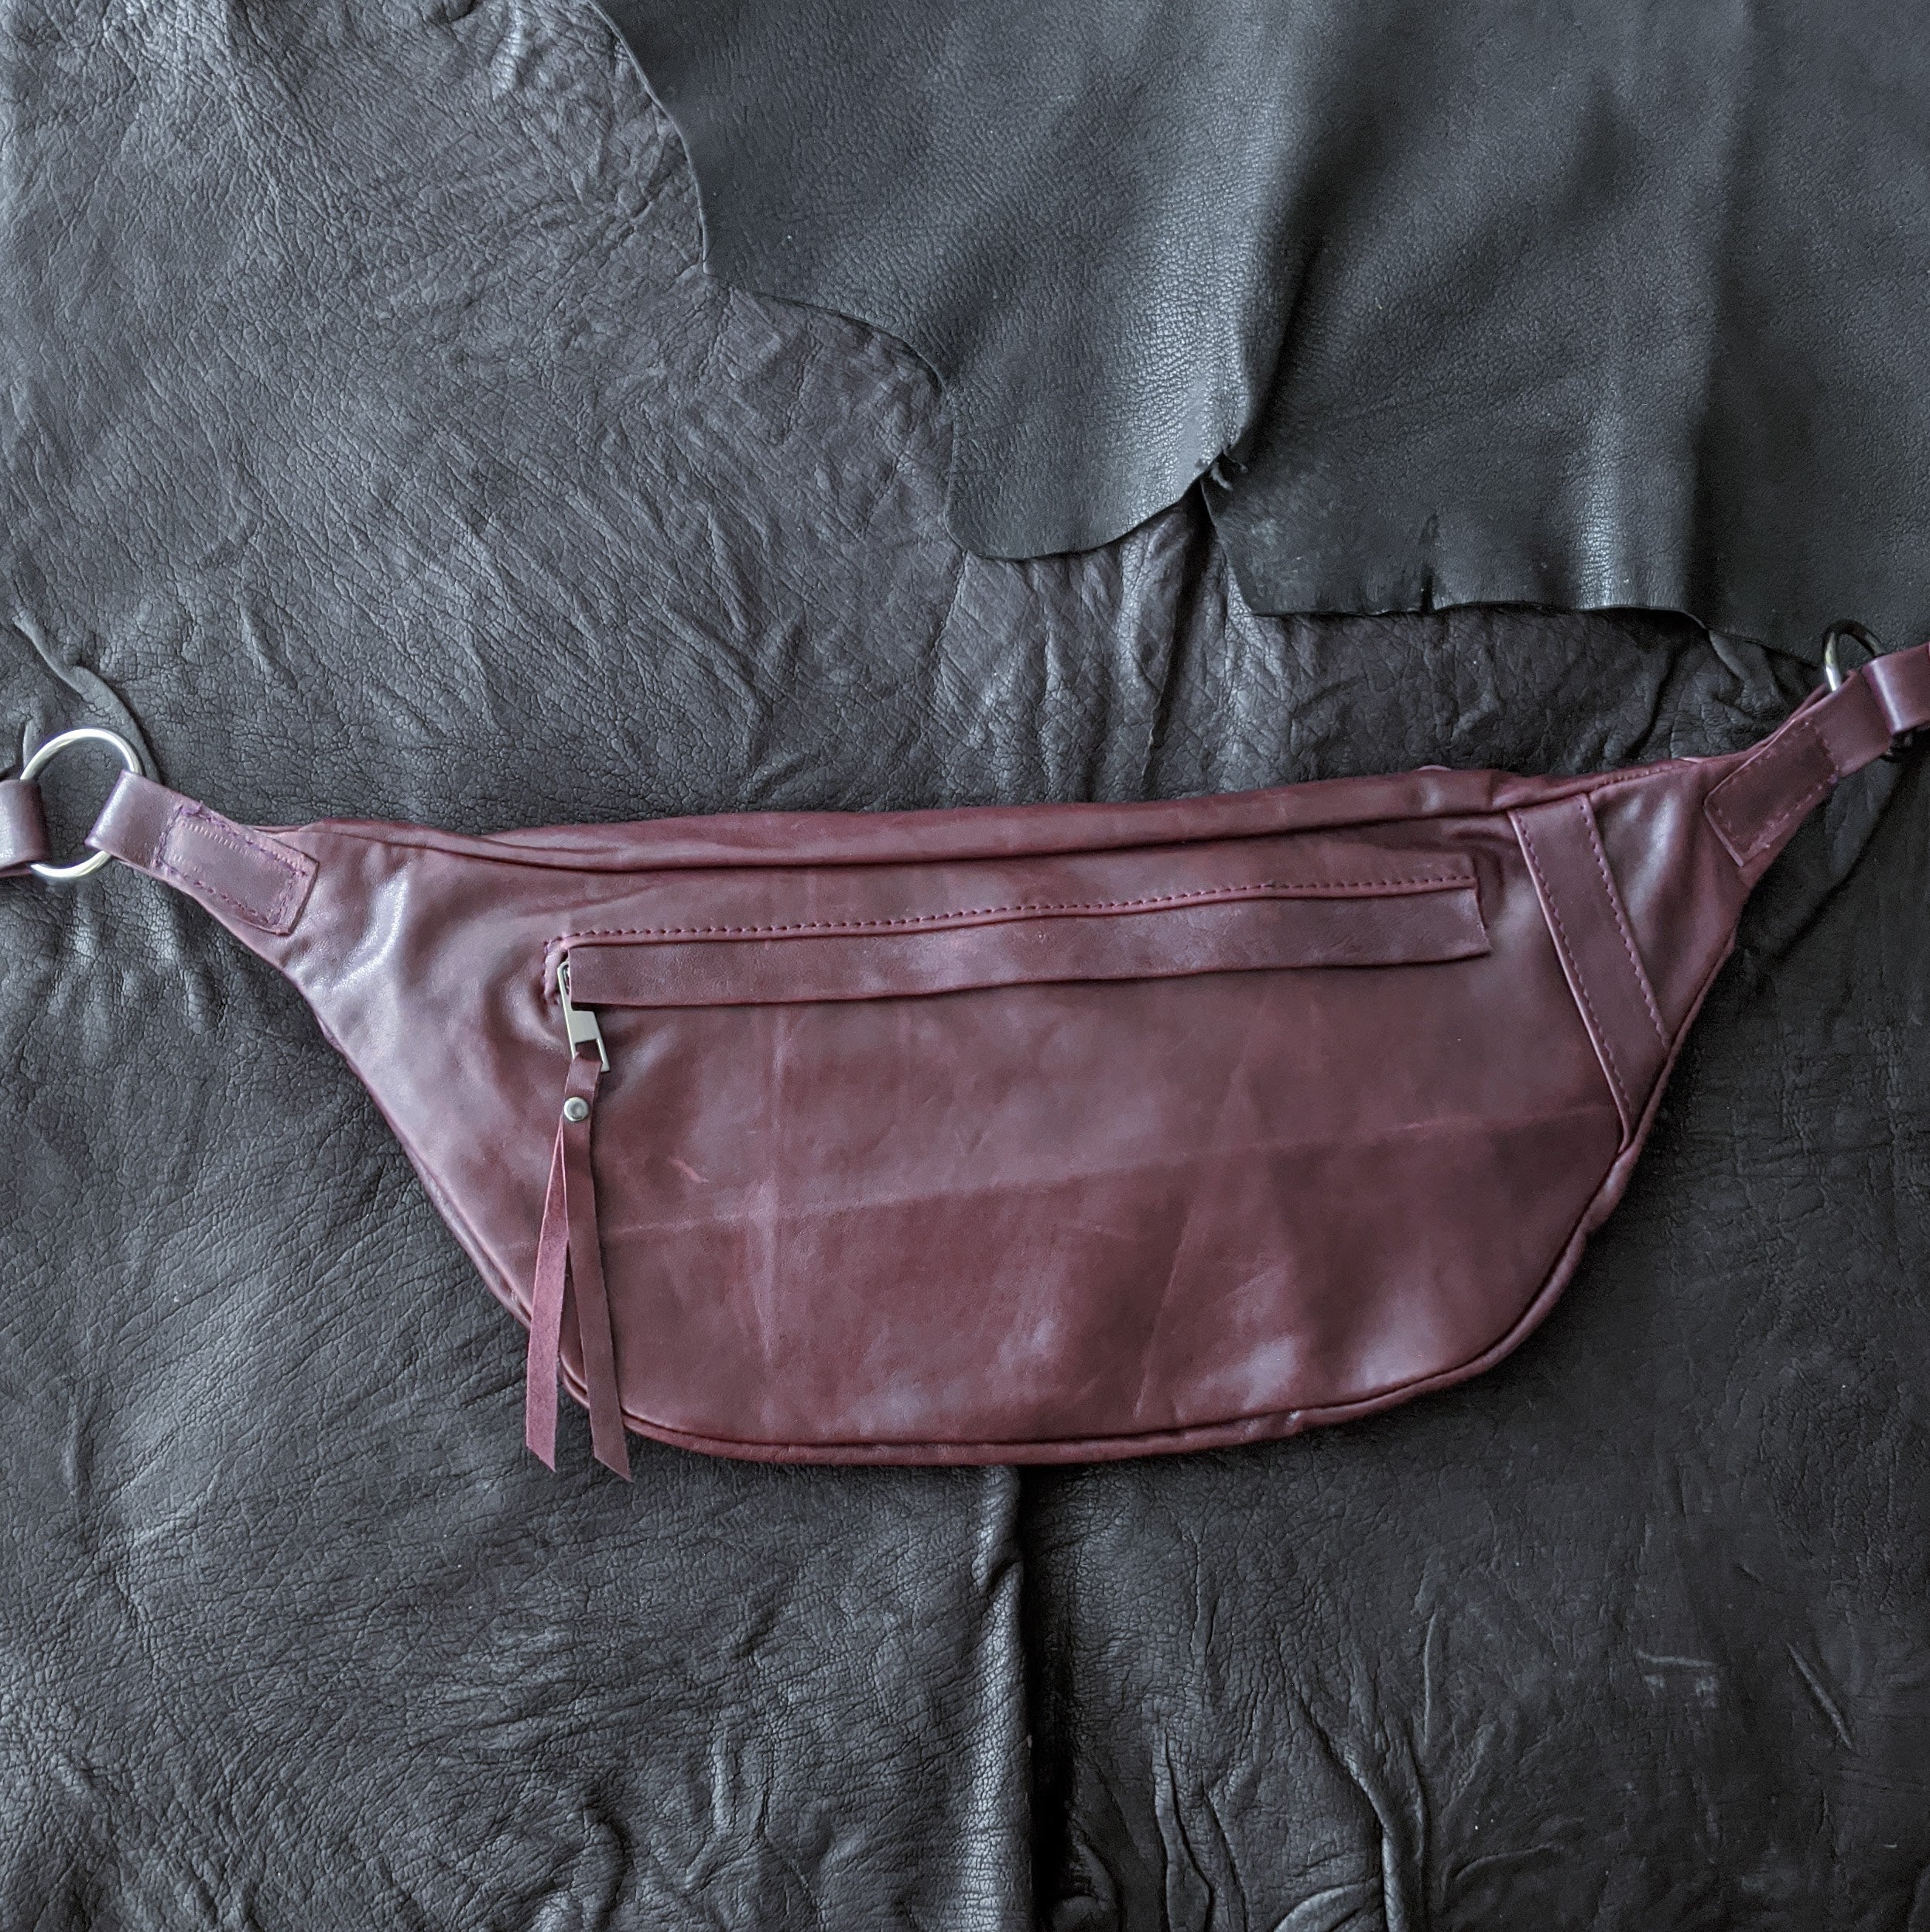 The Everywhere Bag — Distressed Burgundy Leather with Gunmetal Hardware